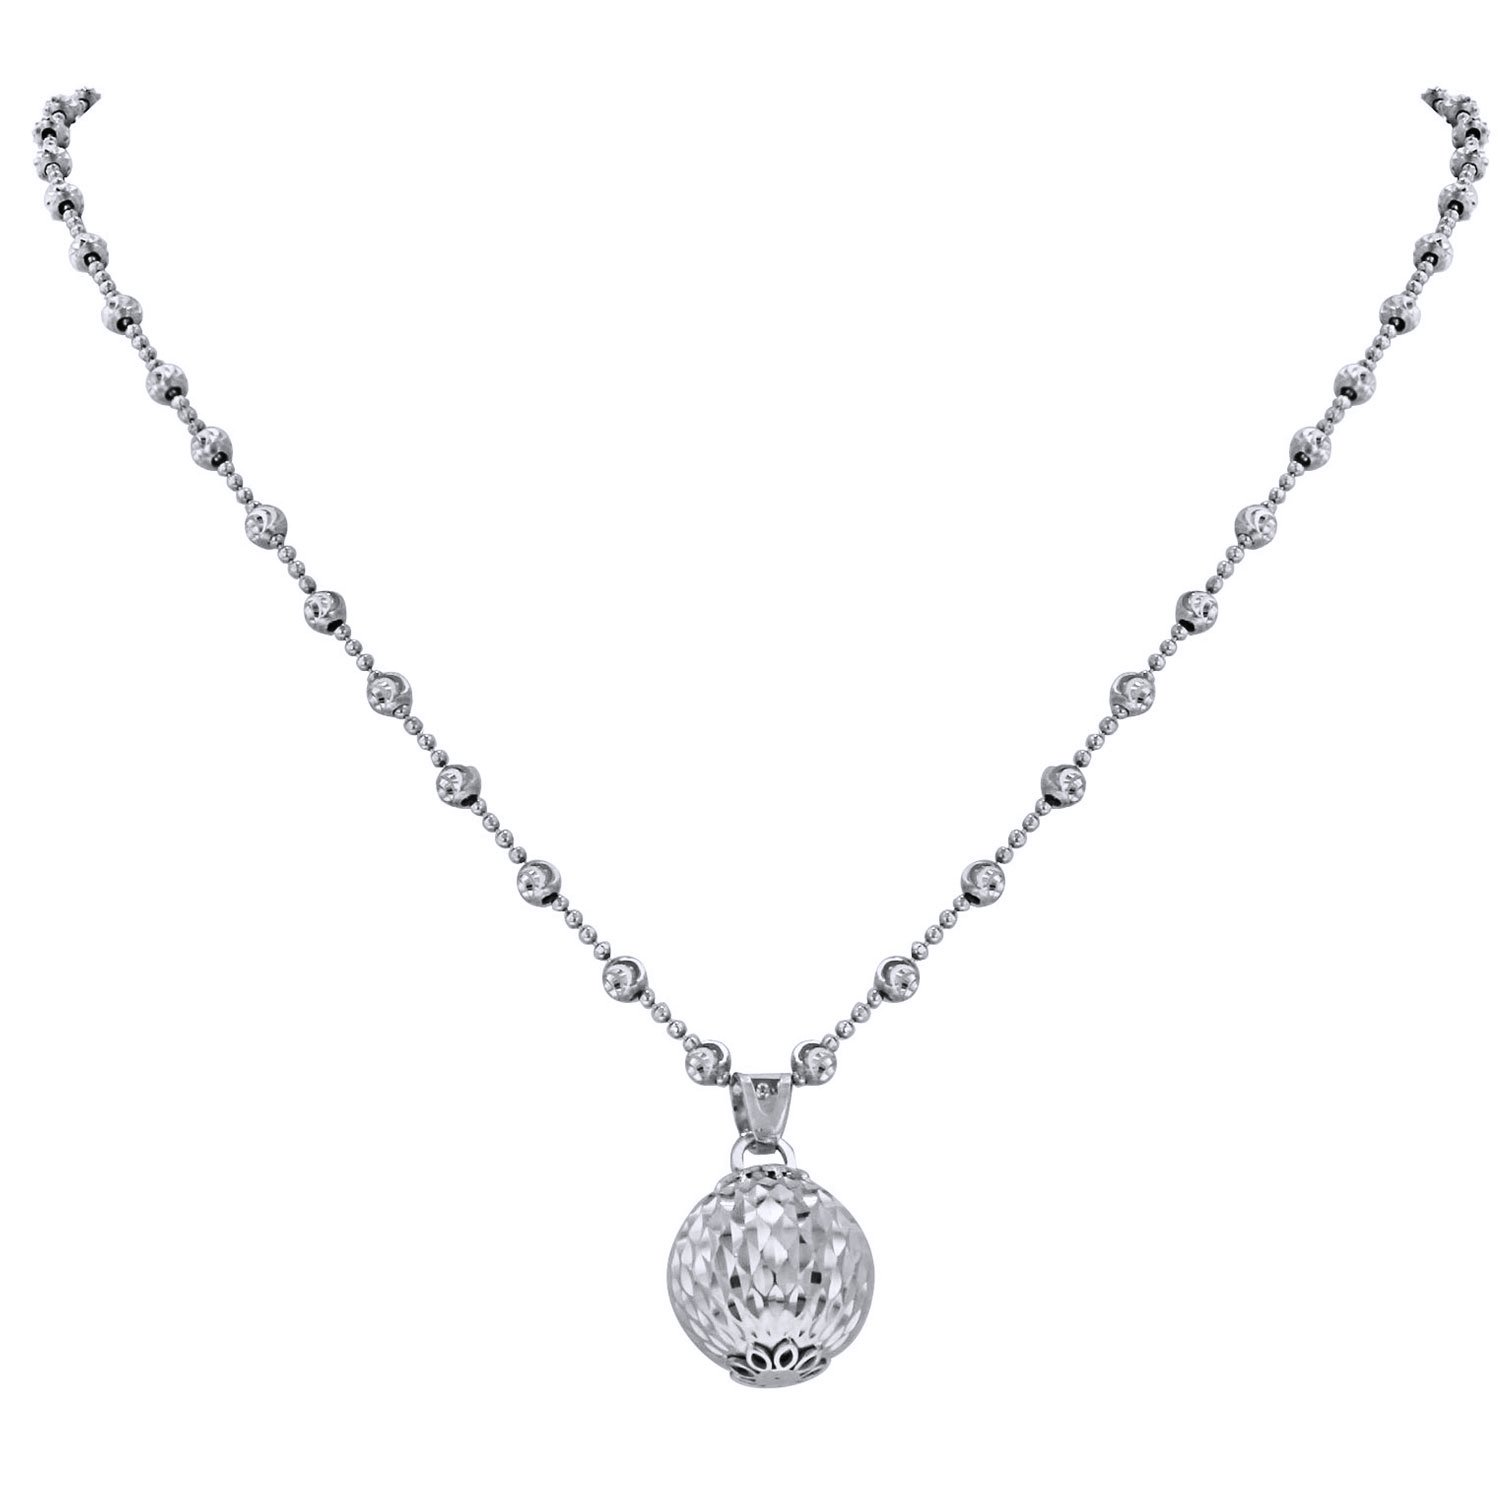 Officina Bernardi Sterling Silver Station Ball Necklace, 18'' with 2'' Extender (White)